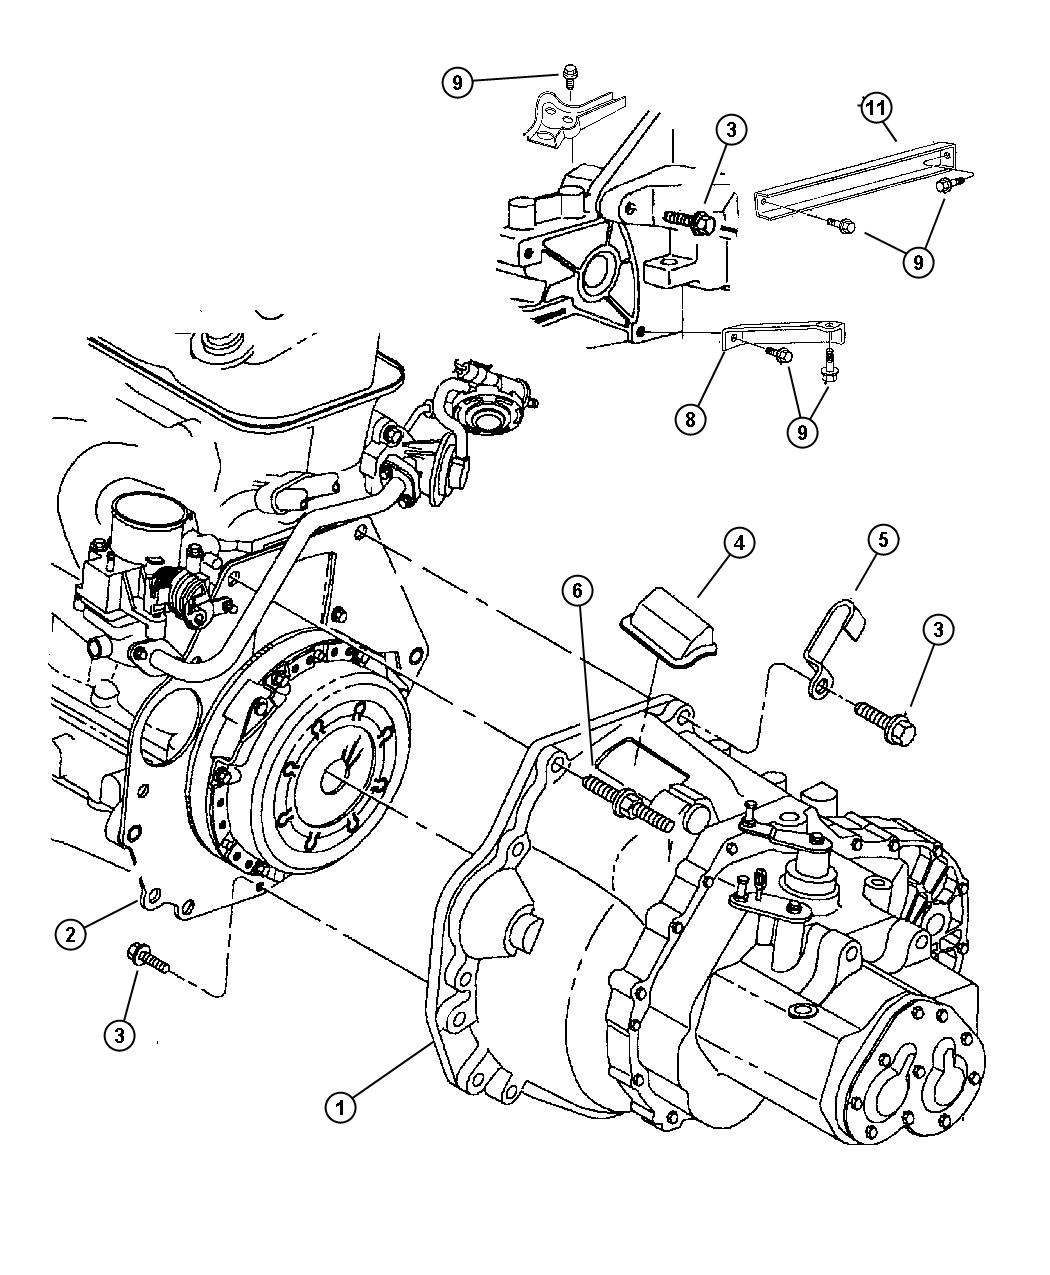 Transaxle Assemblies, and Mounting A578 (DD4, DD5).